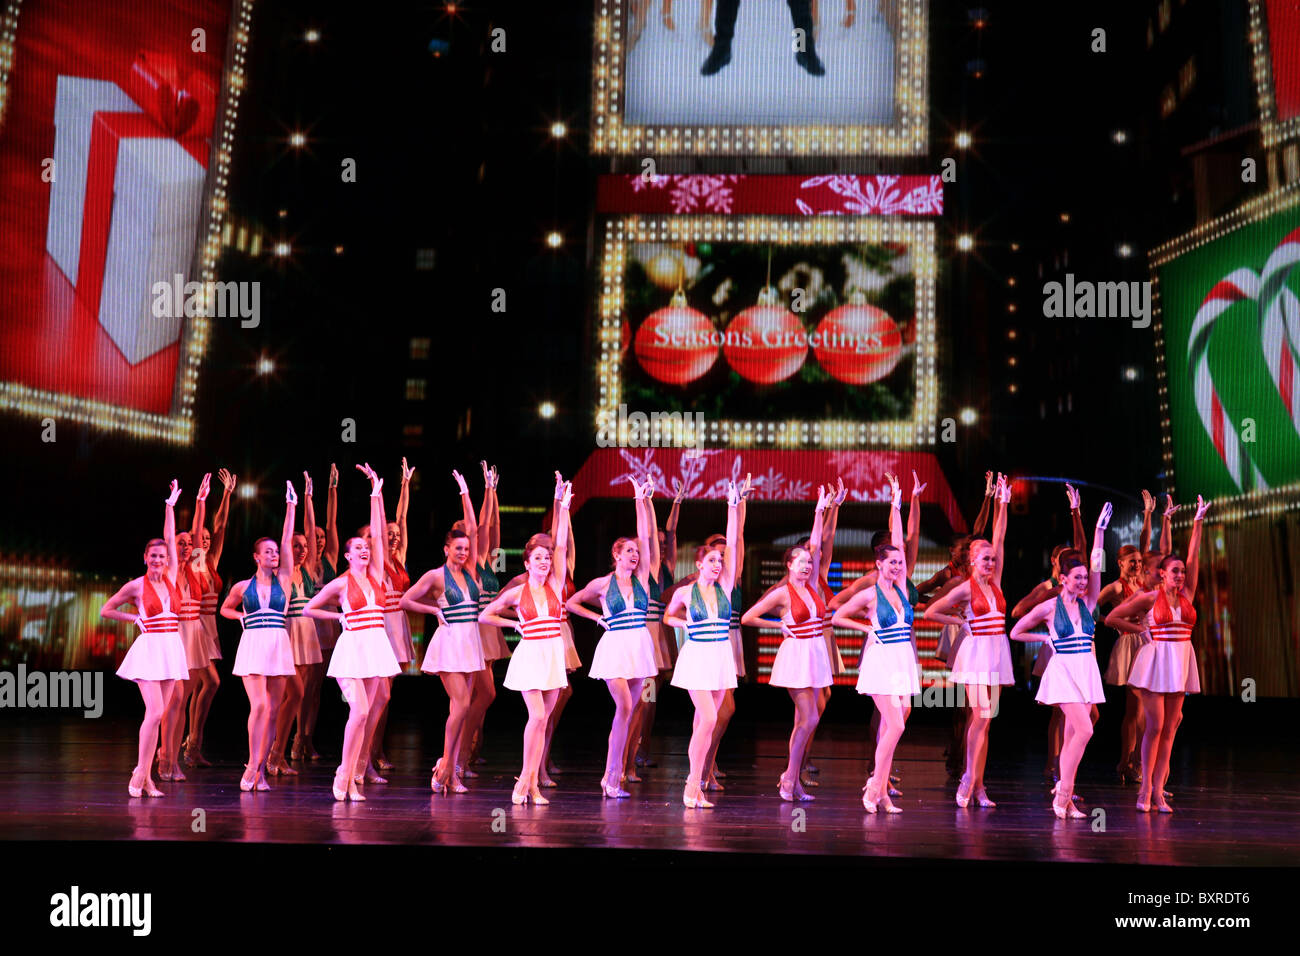 rockettes dancing during new york at christmas scene in radio city music hall christmas - Rockettes Christmas Show